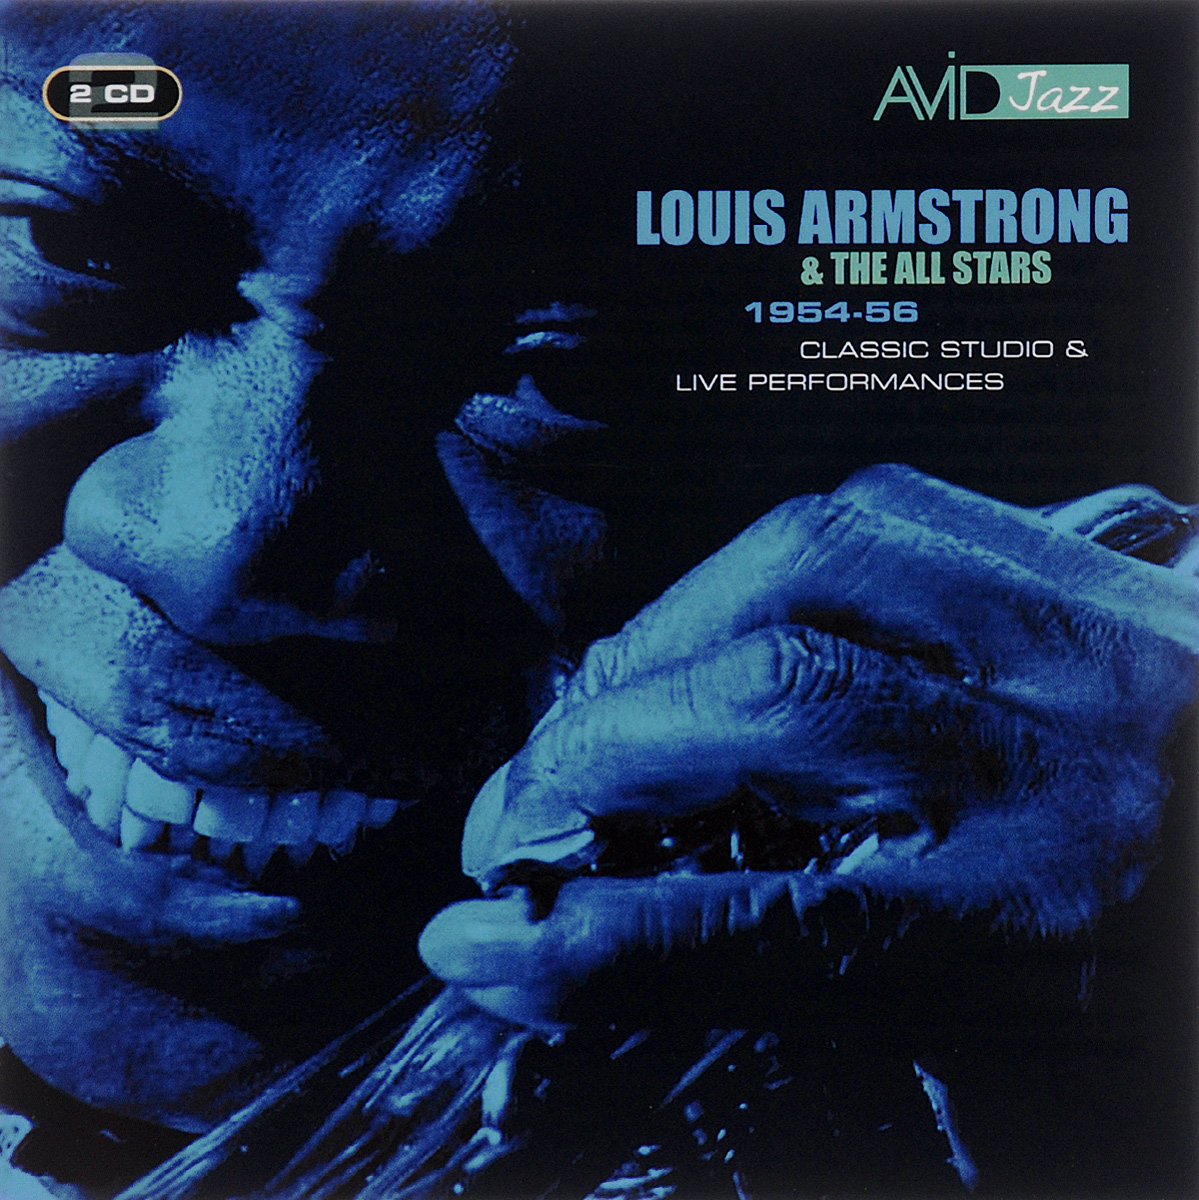 Луи Армстронг,Louis Armstrong & The All Stars Avid Jazz. Louis Armstrong, The All Stars. Louis Armstrong & The All Stars 1954-56 (2 CD)